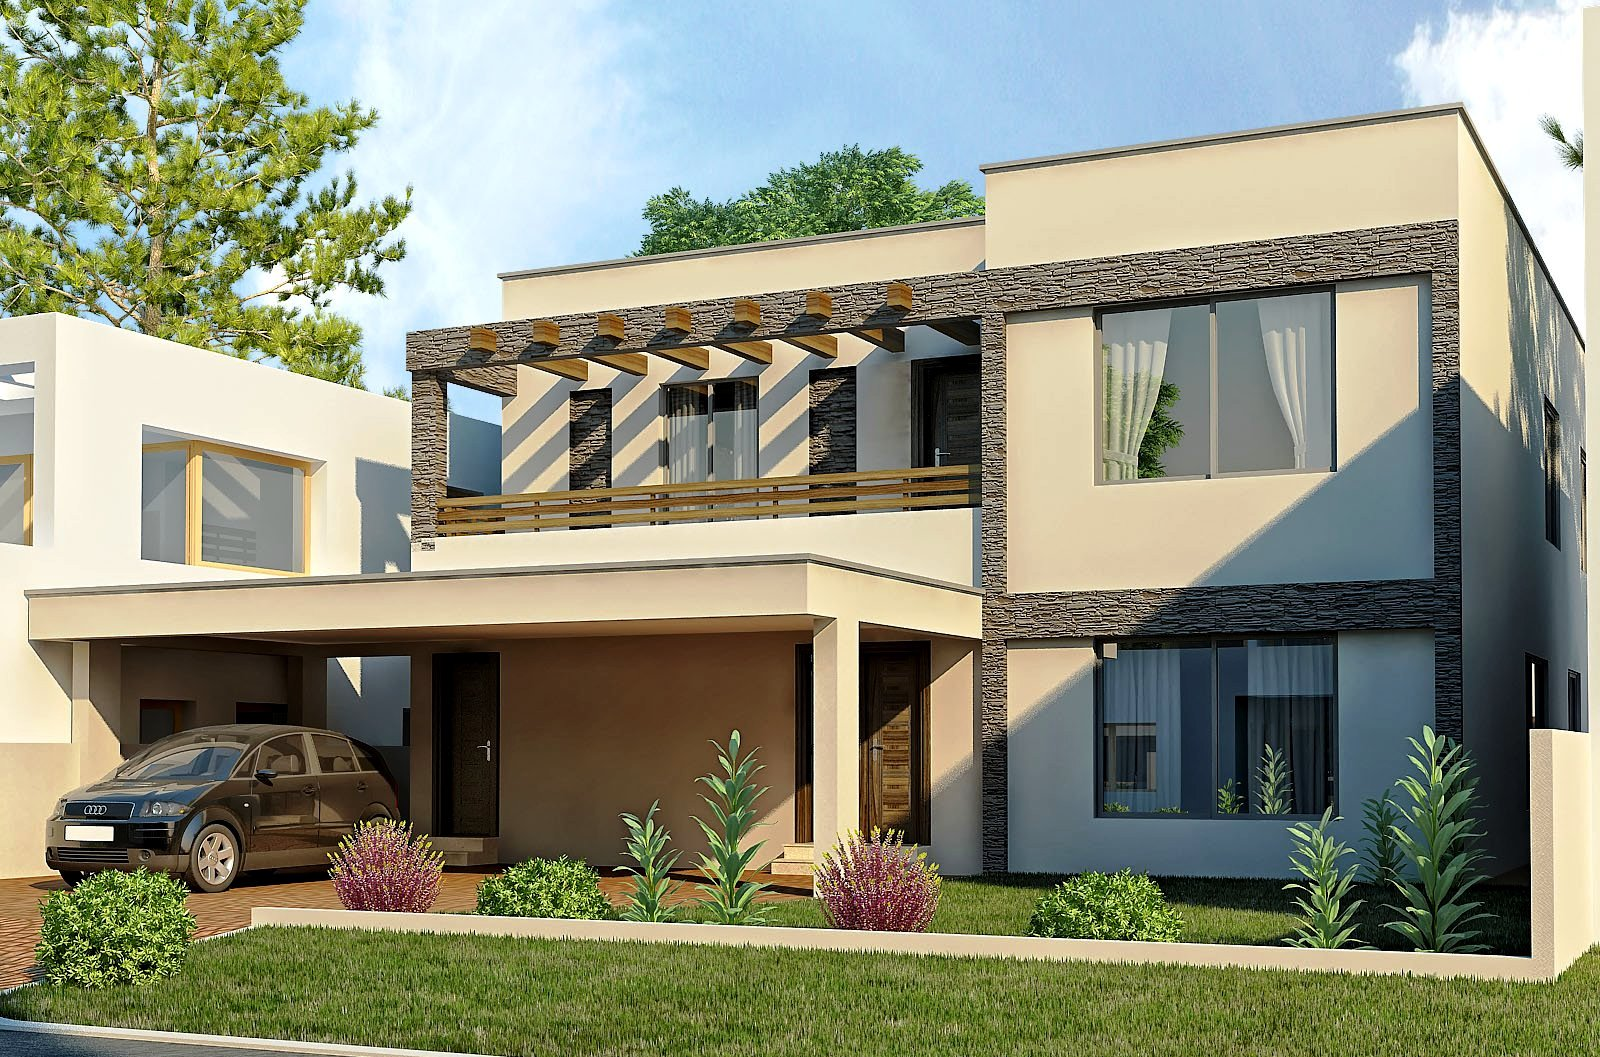 New home designs latest modern homes exterior designs views for Modern decorative items for home